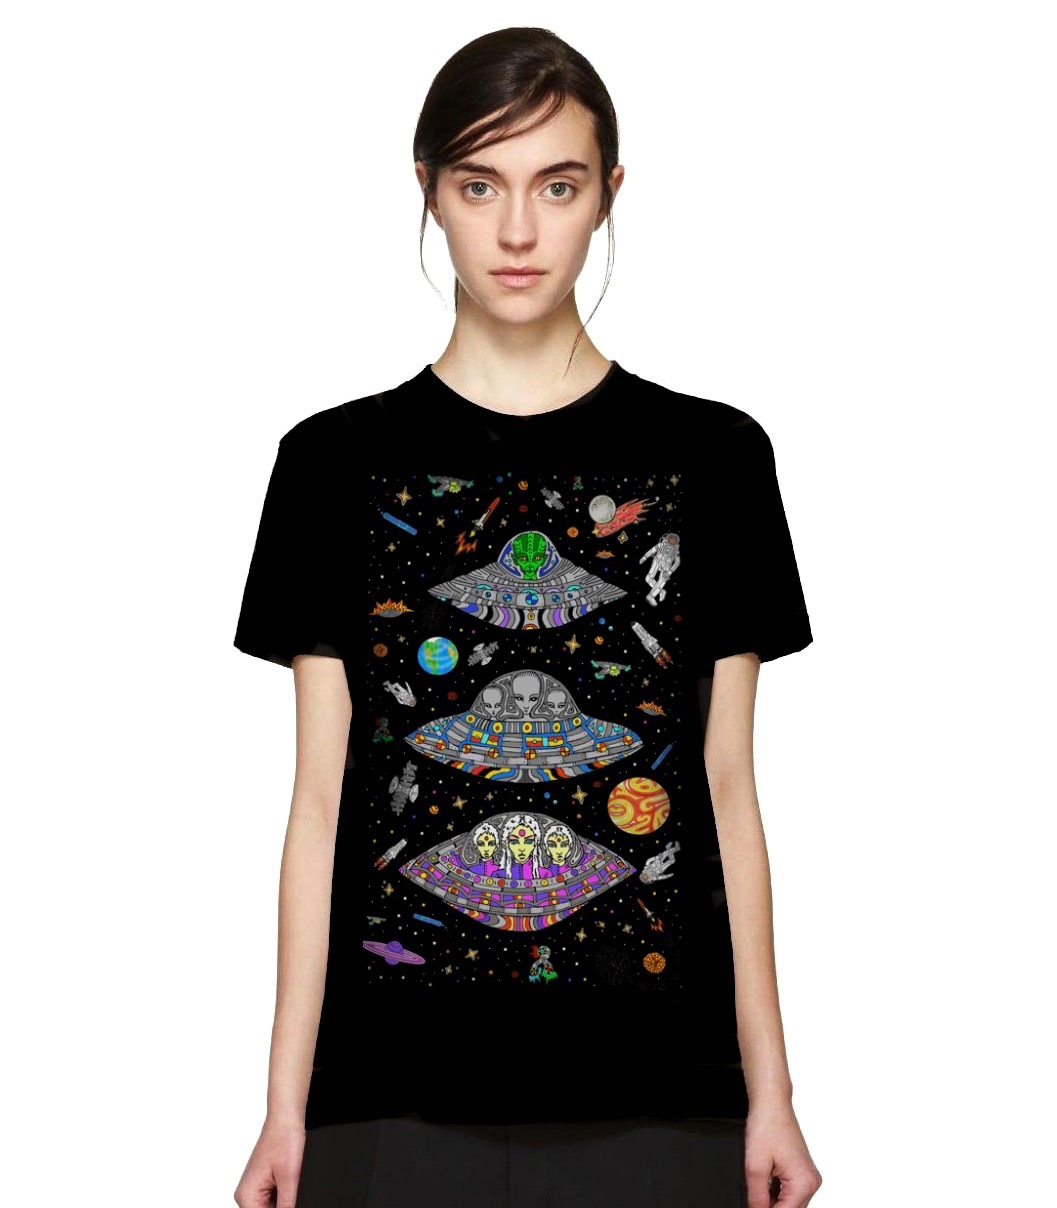 15-Off-White-Women-s-Black-Embroidered-T-Shirt-1 copy 18.jpg